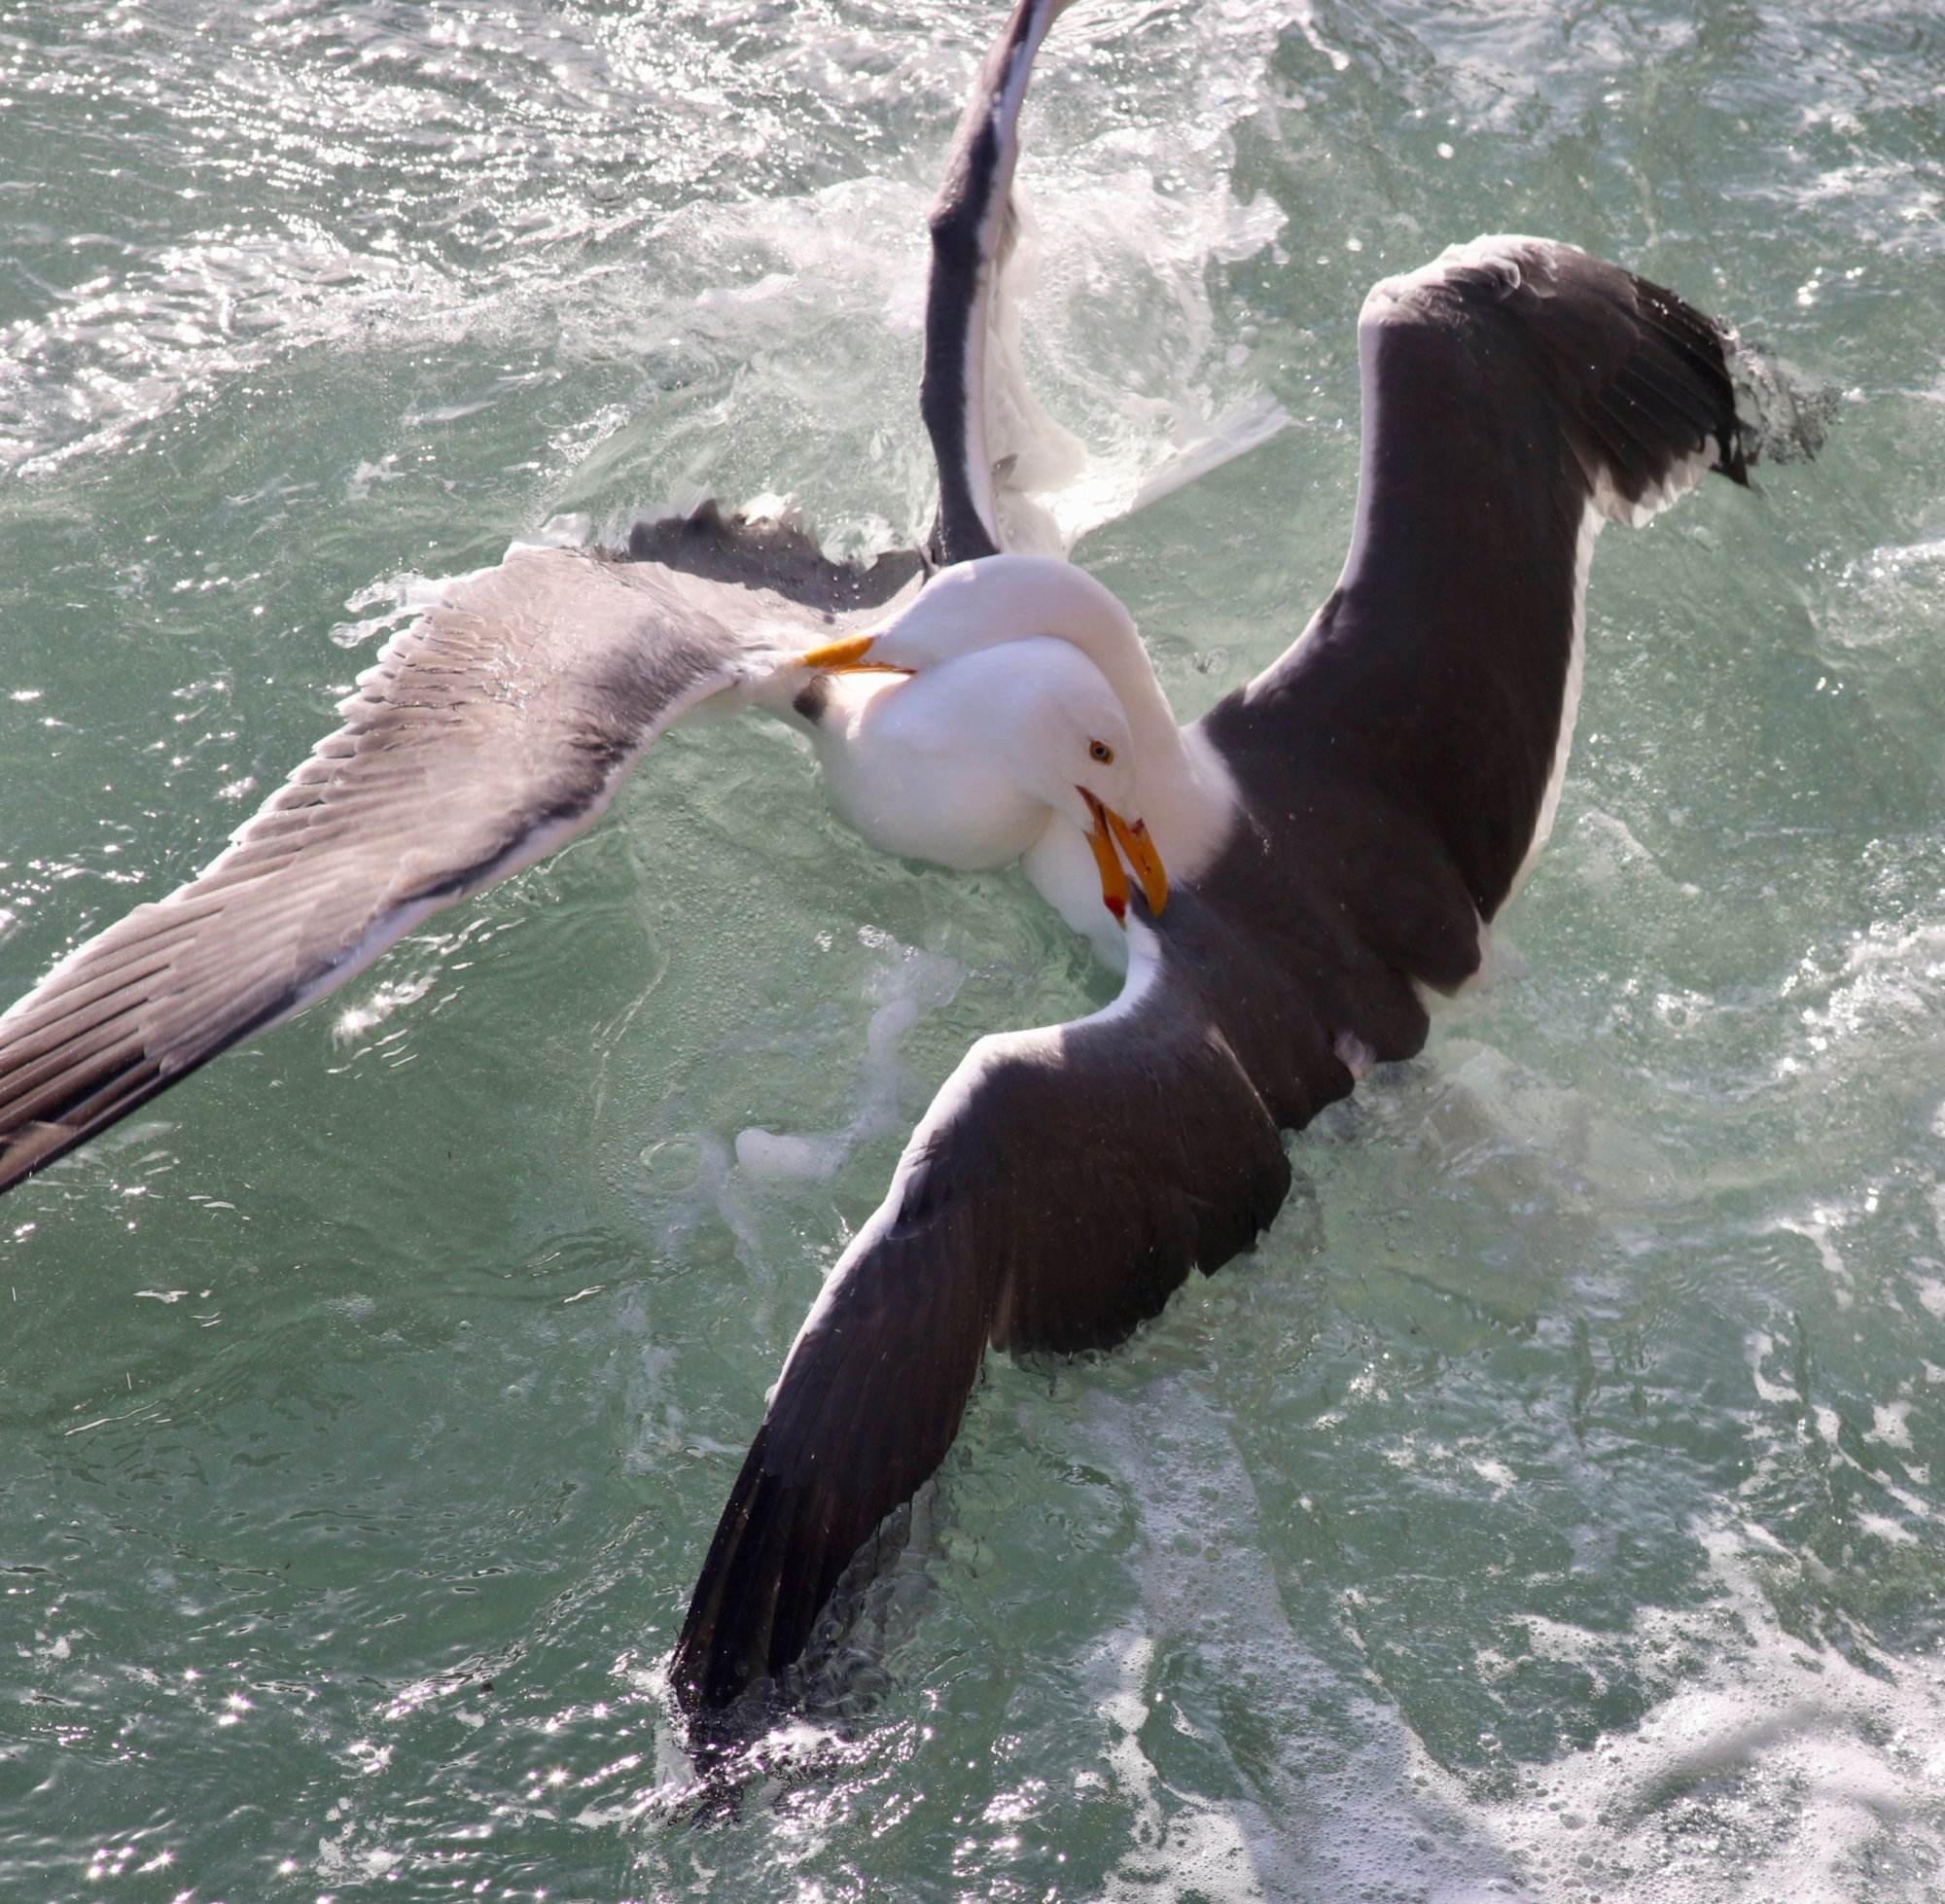 Two gulls face each other, necks locked and wings outstretched, in churning waters.